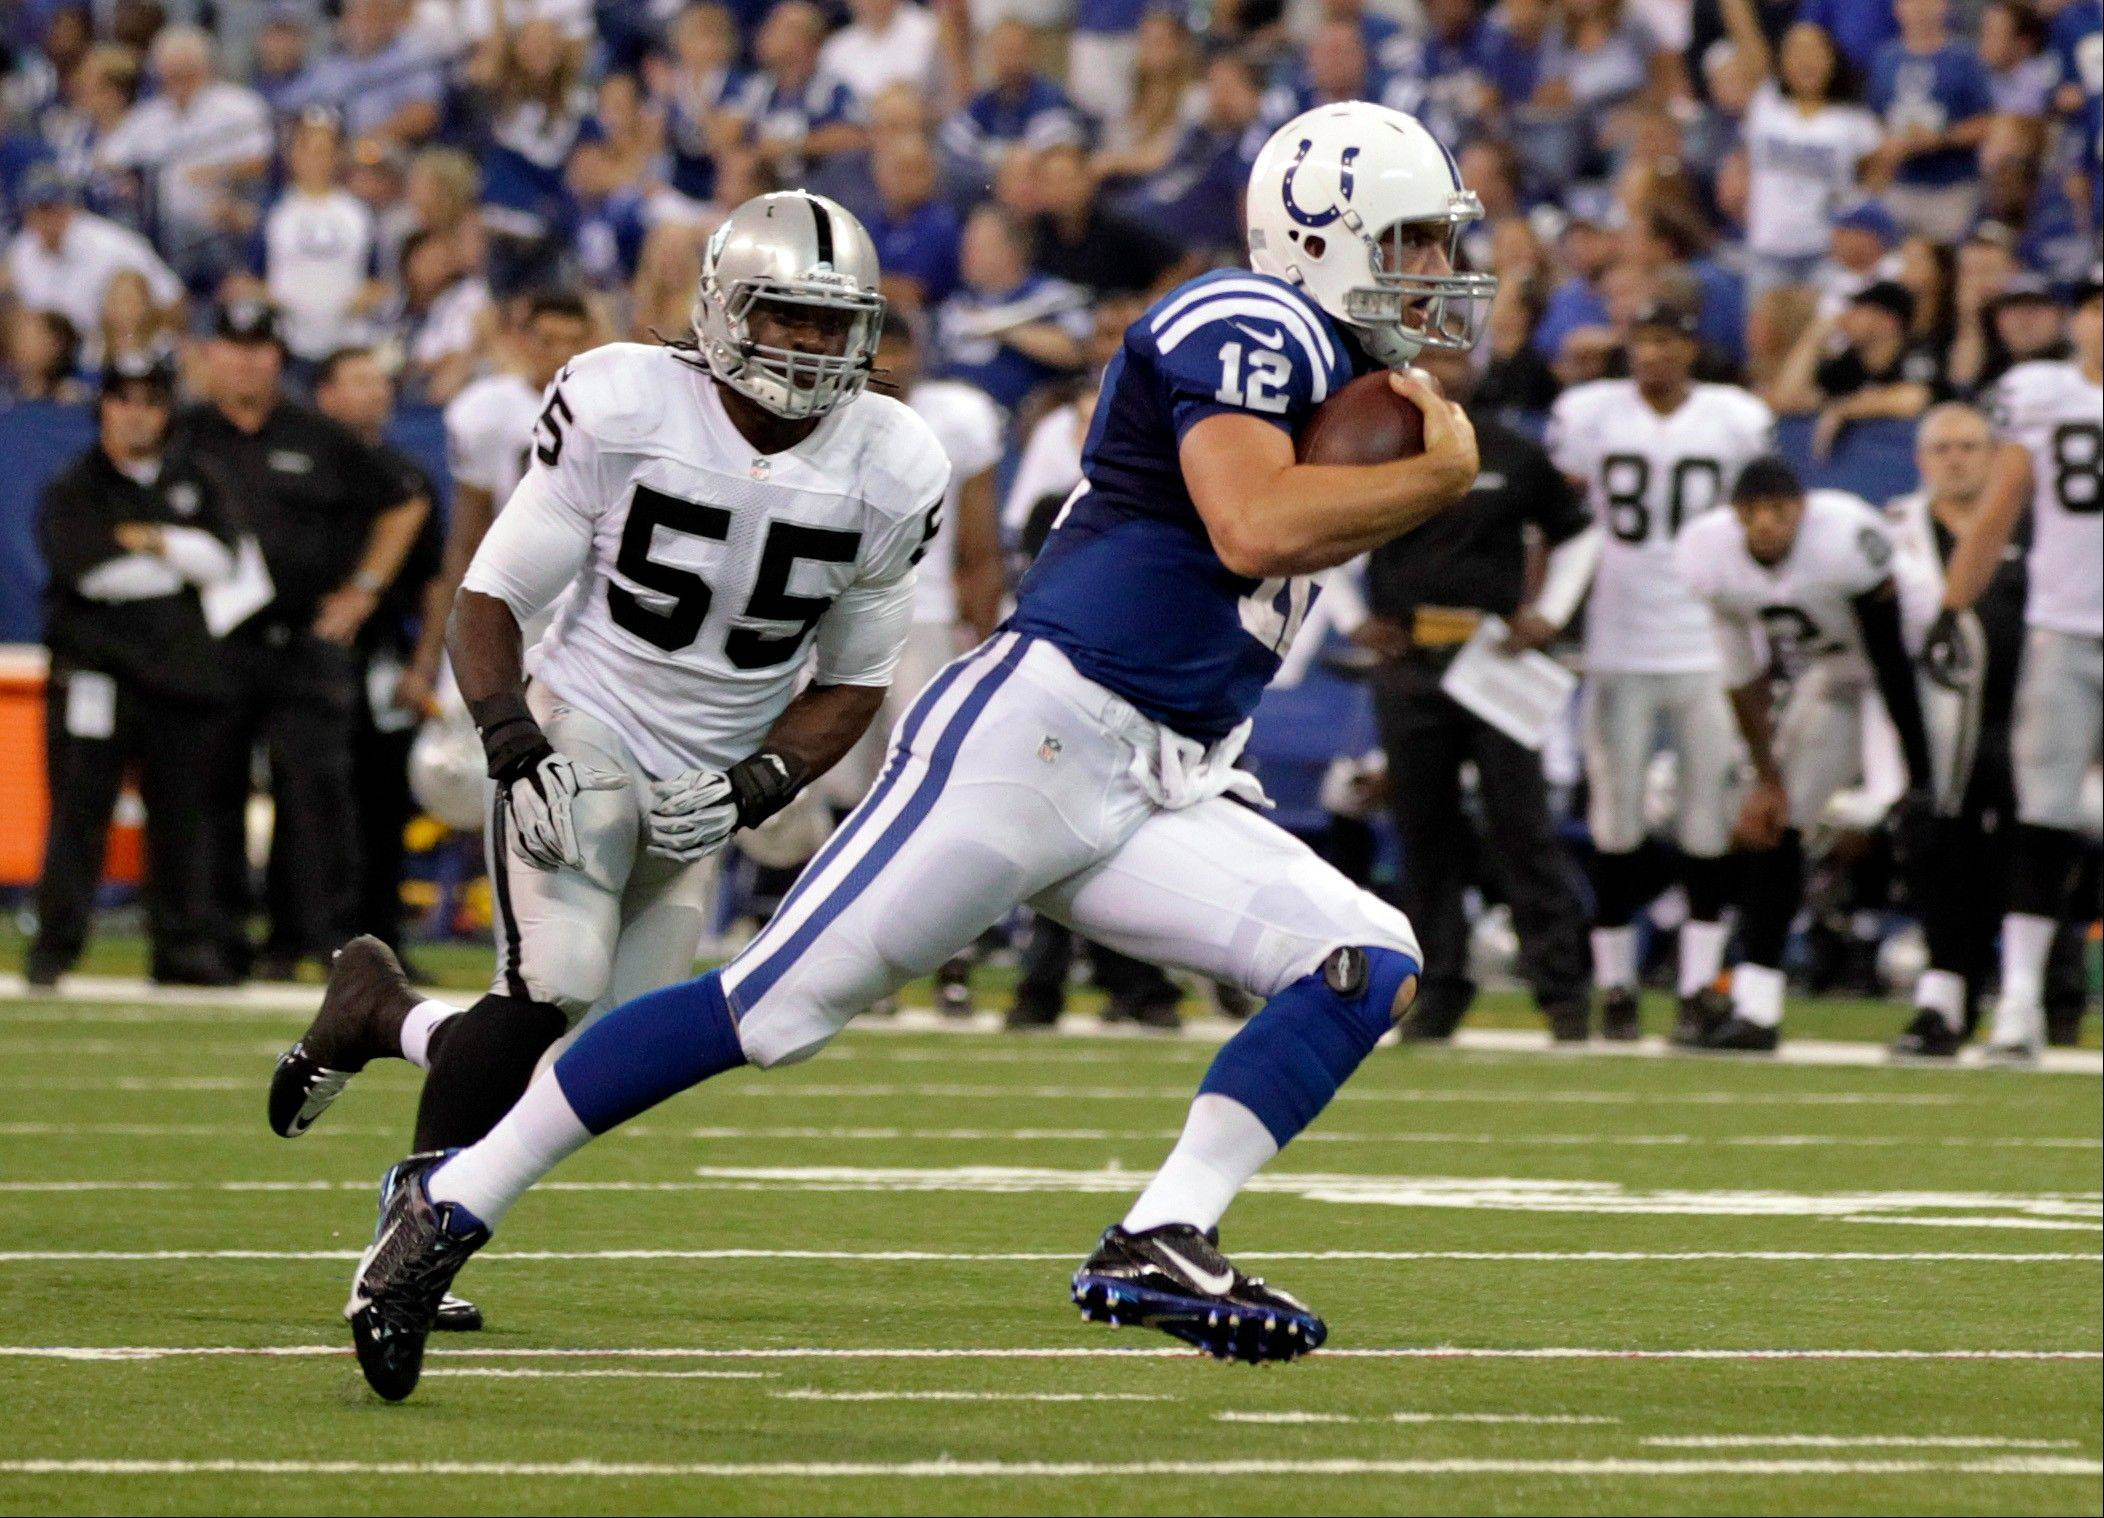 Indianapolis Colts quarterback Andrew Luck runs past Oakland Raiders outside linebacker Sio Moore on his way to a touchdown during the second half of an NFL football game in Indianapolis, Sunday, Sept. 8, 2013.